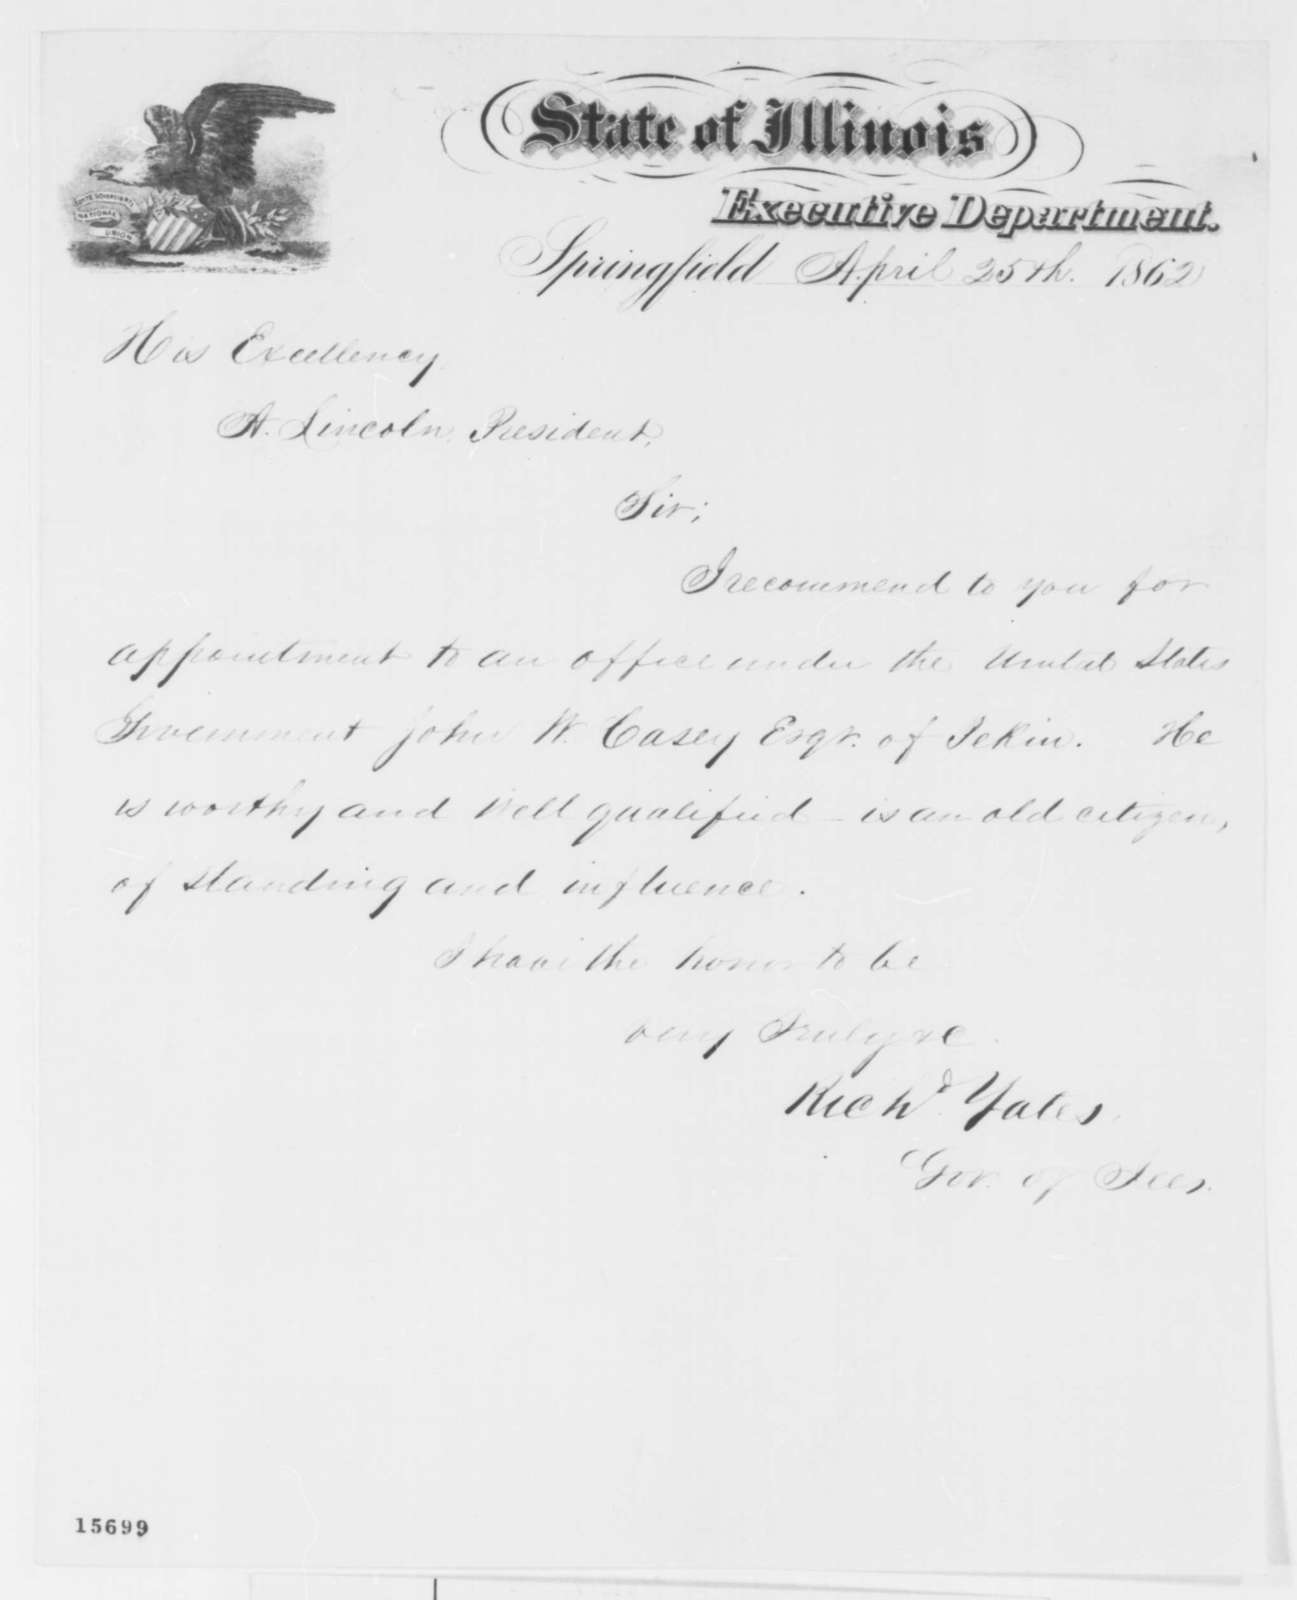 Richard Yates to Abraham Lincoln, Friday, April 25, 1862  (Recommendation)